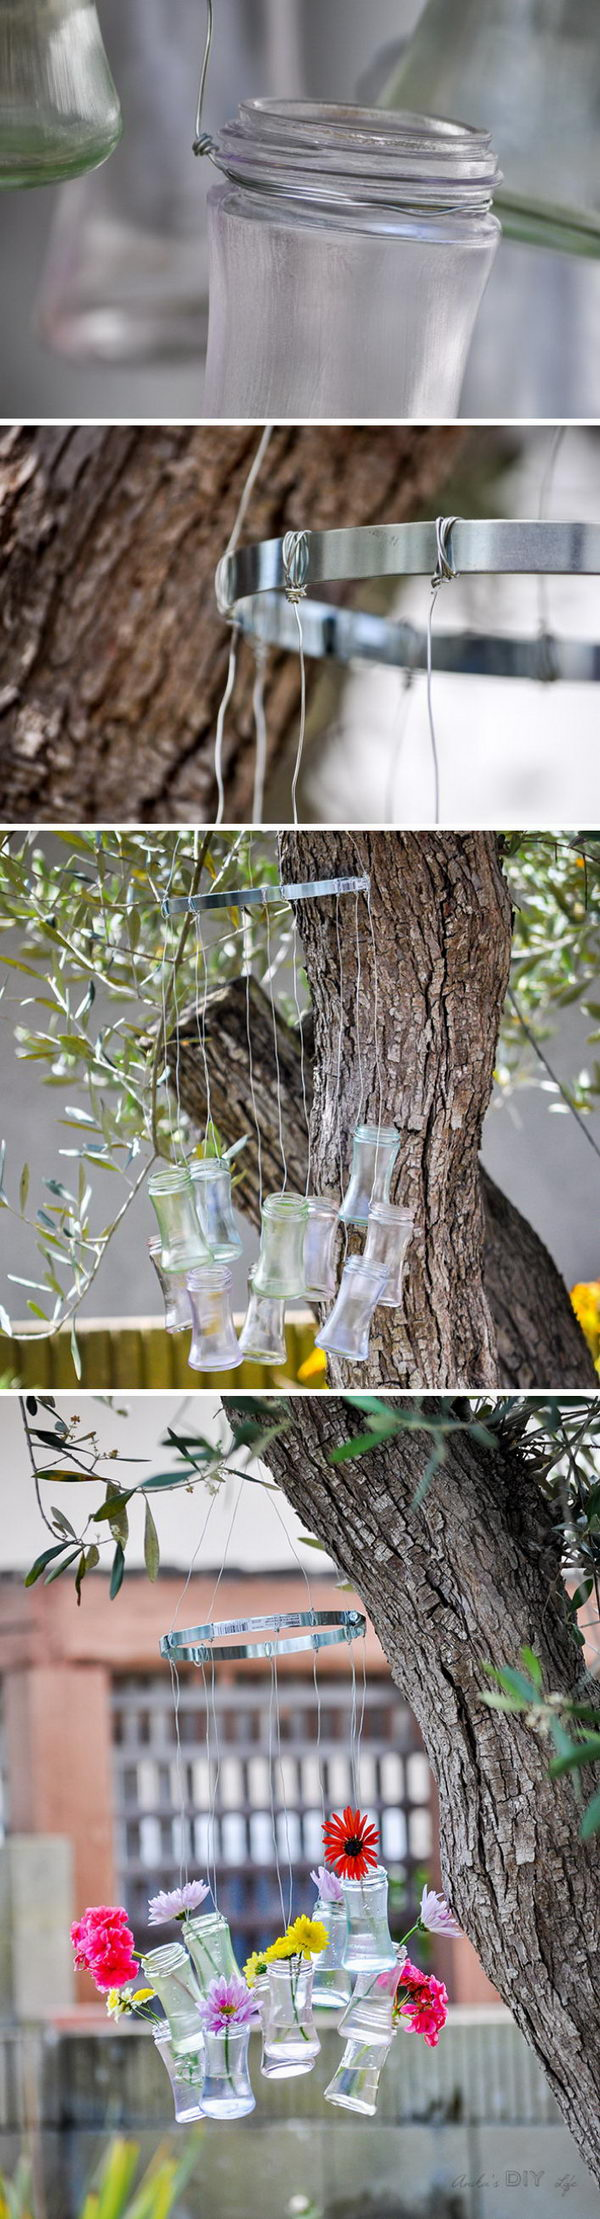 DIY Recycled Glass Bottle Wind Chimes.